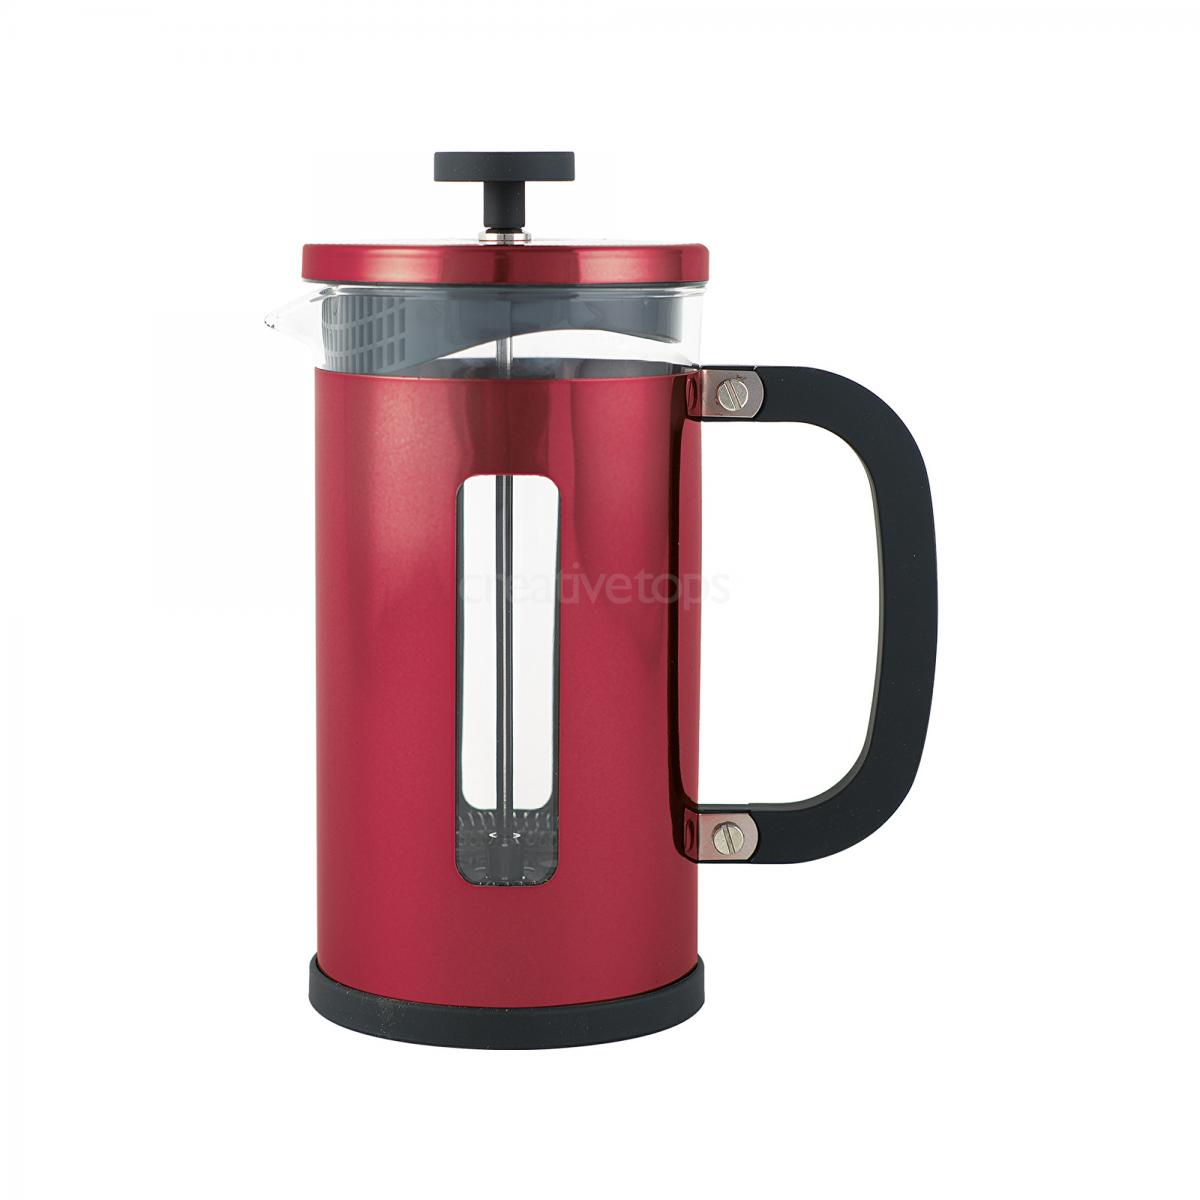 Pisa 8 Cup Cafetiere Red – Now Only £20.00